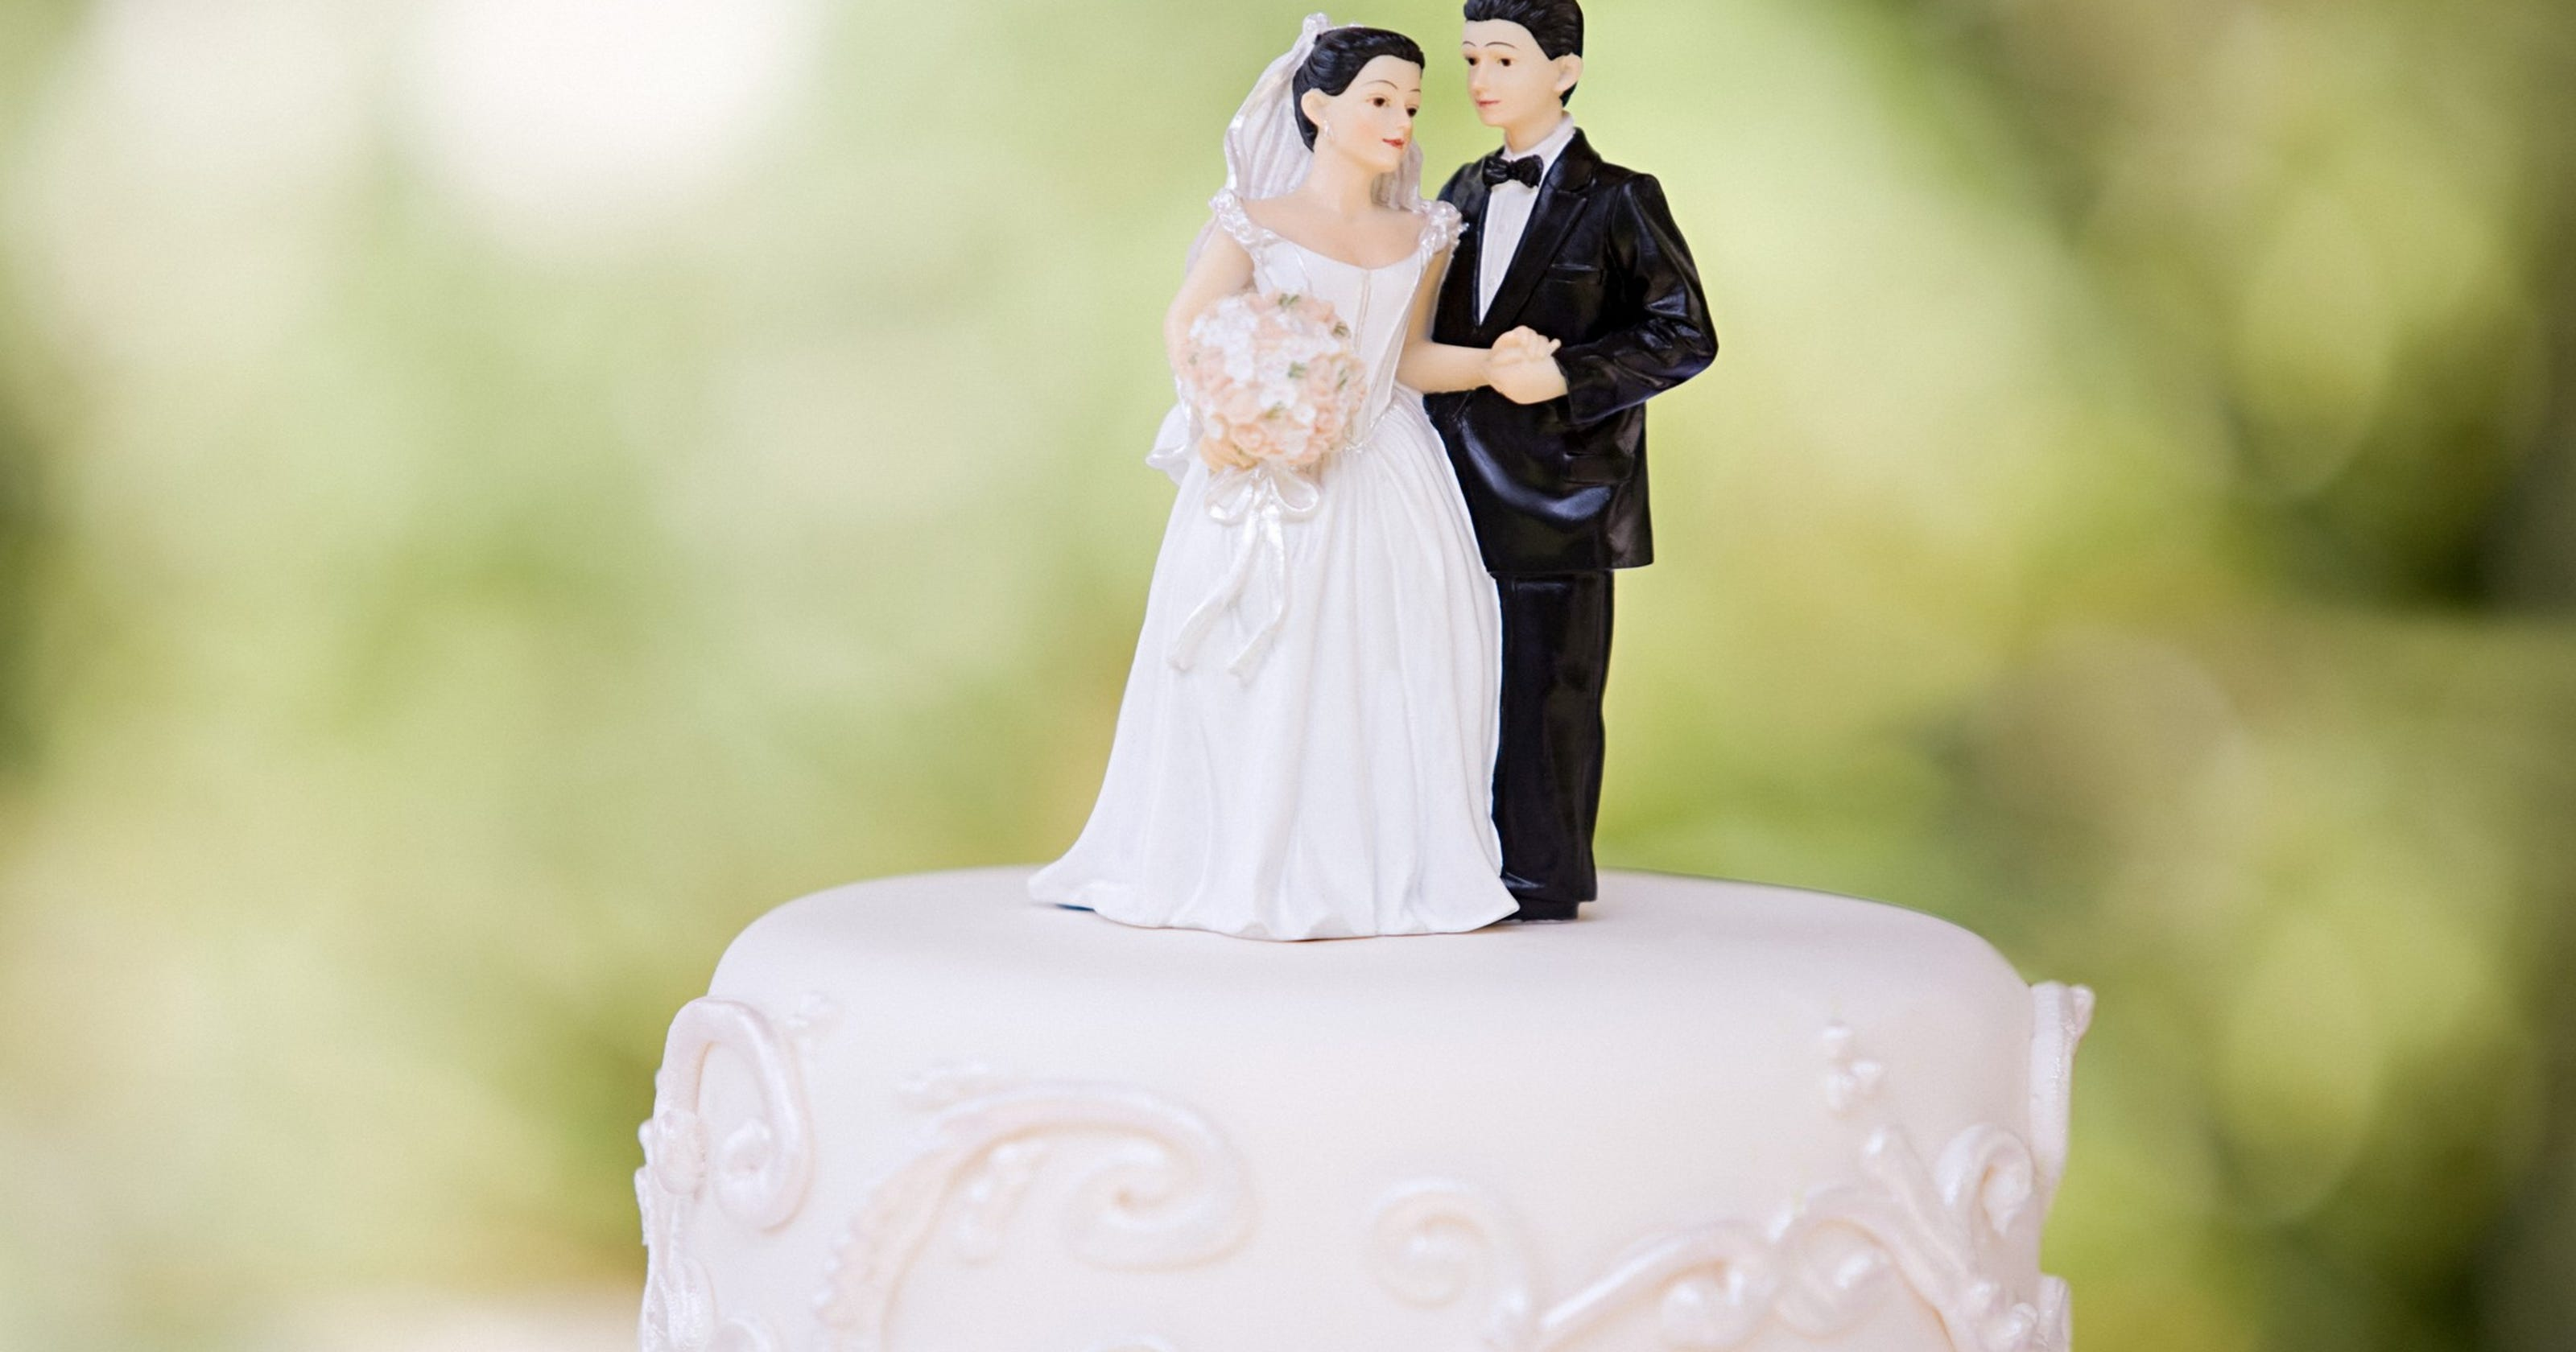 Arizona has no minimum legal age to marry. A bill may change it to 18